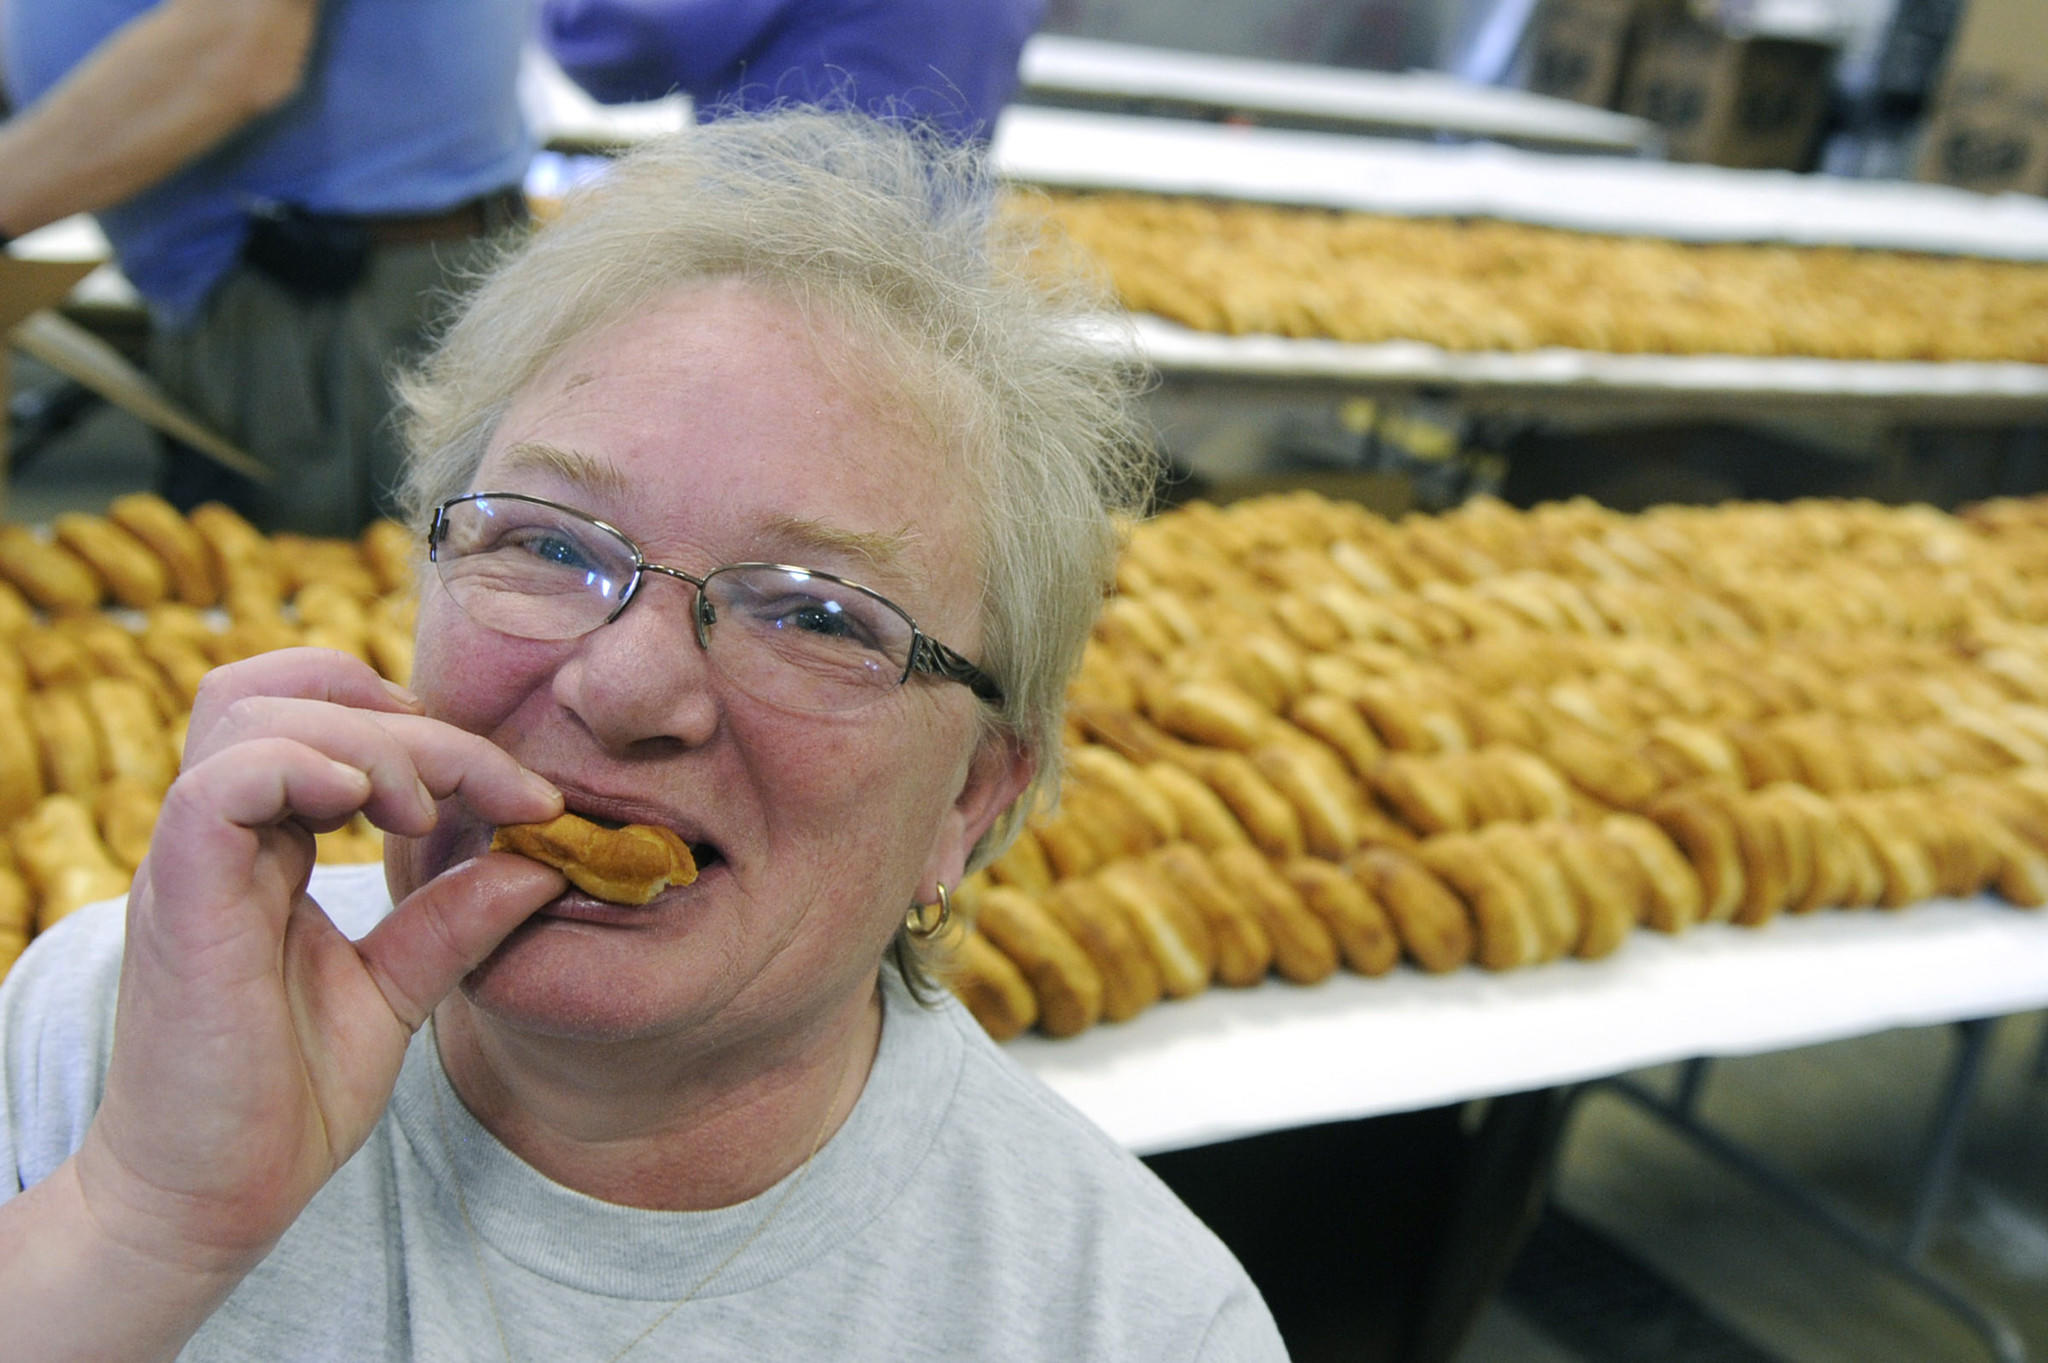 Linda Gorr of Breinigsville, president of Ladies Auxiliary at the Goodwill Fire Co., enjoys a fastnacht in the annual fastnacht-making event Saturday. Fastnachts might be available after orders are filled, call 610-395-9759 after Monday, Feb. 20 for availability. ////// TREXLERTOWN DONNA FISHER/THE MORNING CALL Pic made SATURDAY, FEBRUARY 18, 2012